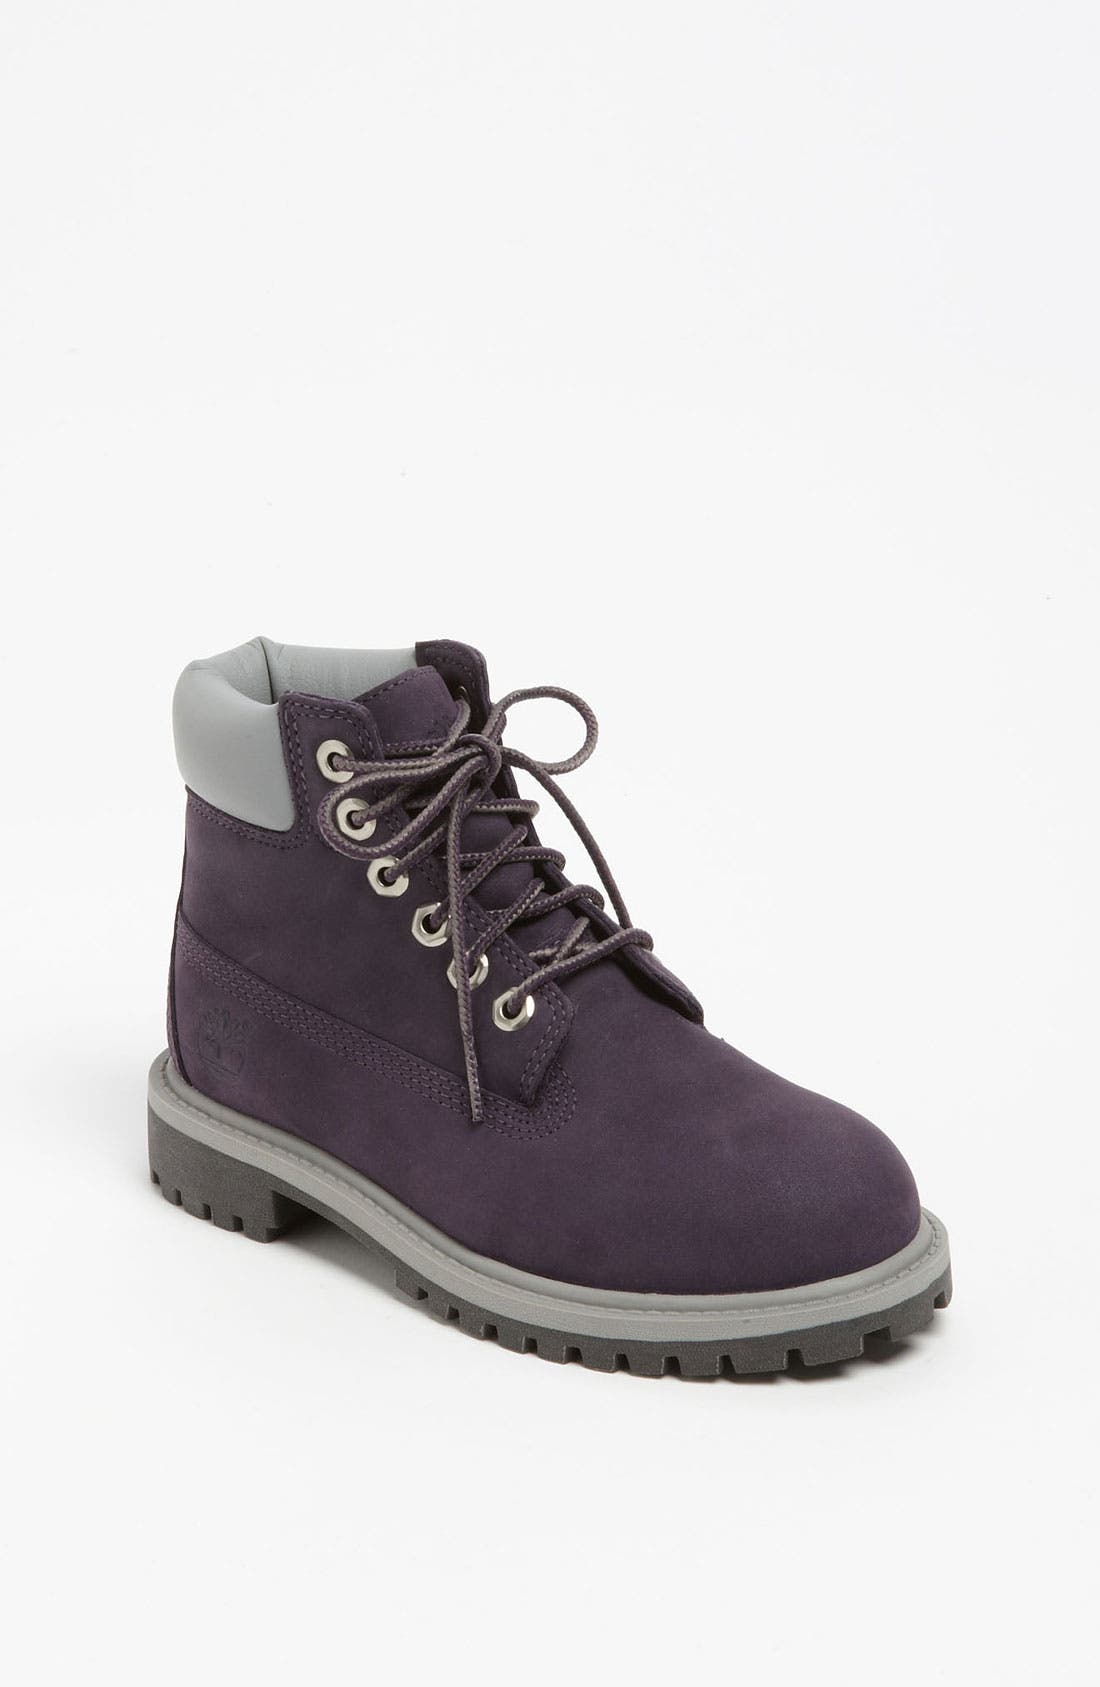 Alternate Image 1 Selected - Timberland '6 Inch' Classic Boot (Toddler, Little Kid & Big Kid)